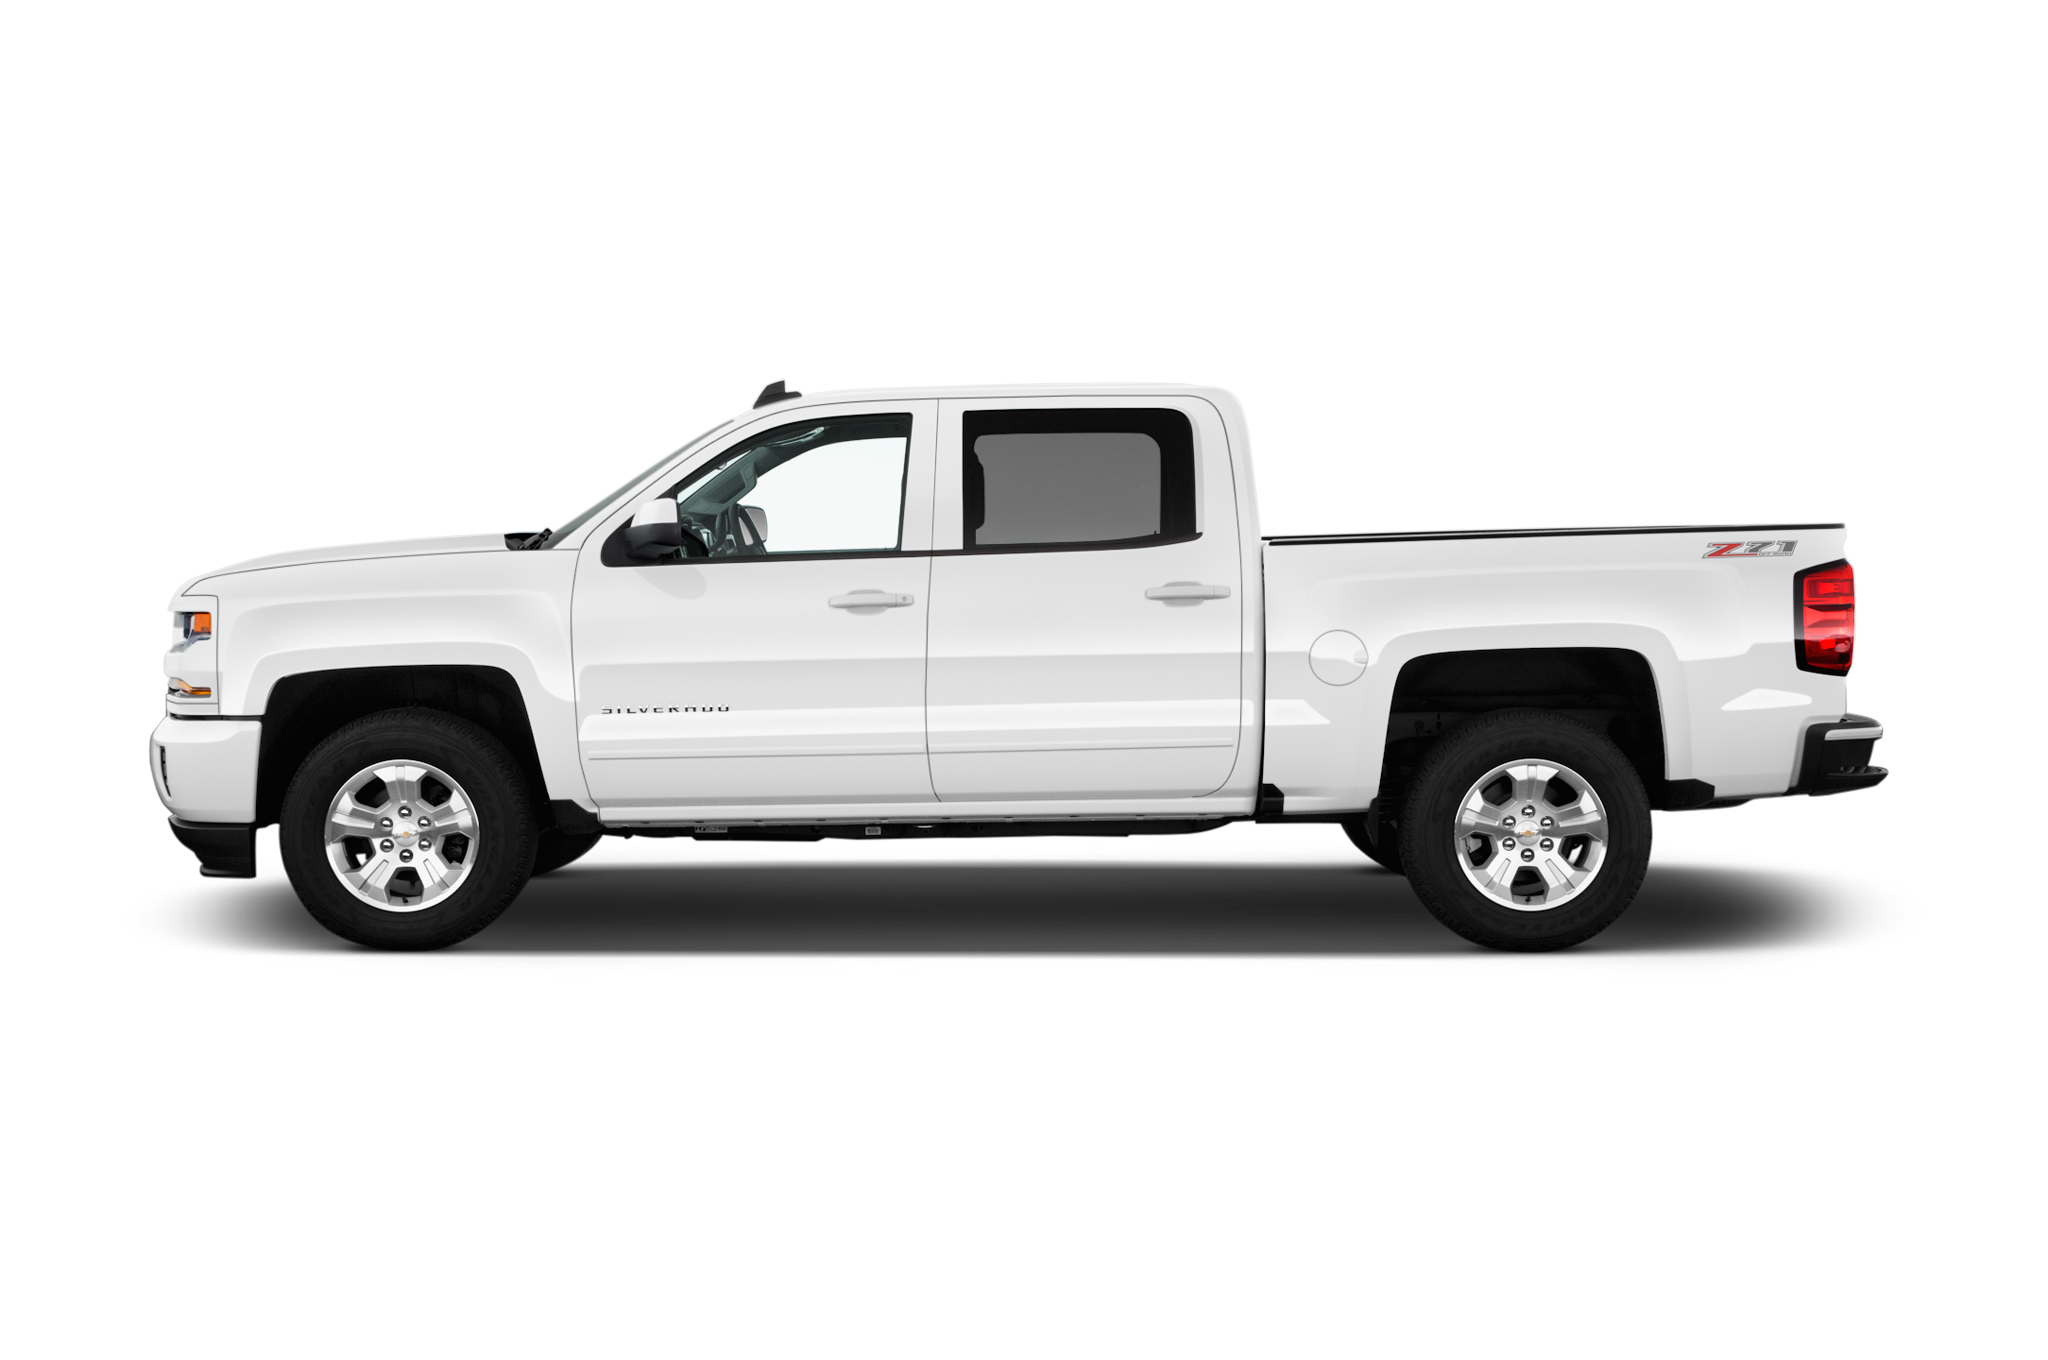 2016 Chevrolet Silverado Rally Edition Debuts in Texas